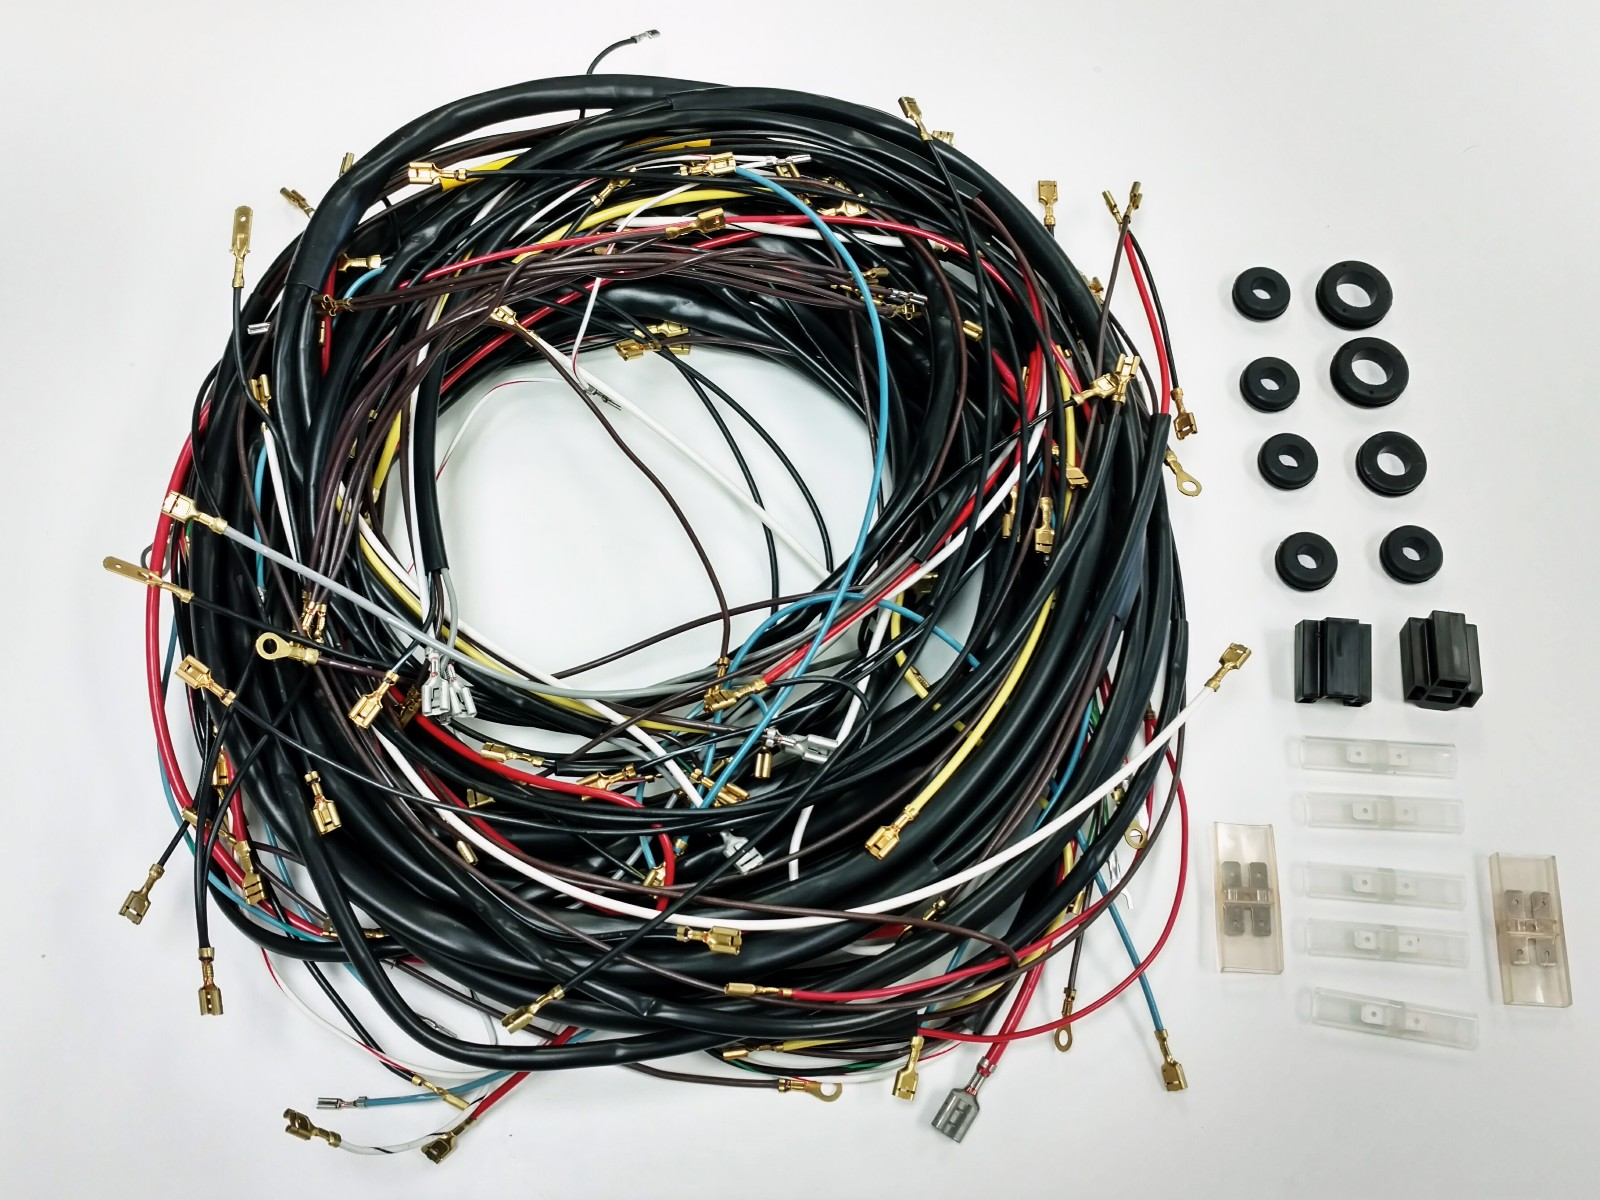 Painless Wiring Harness Vw Bug Schematic 2019 Wire Kits Diagram With Description